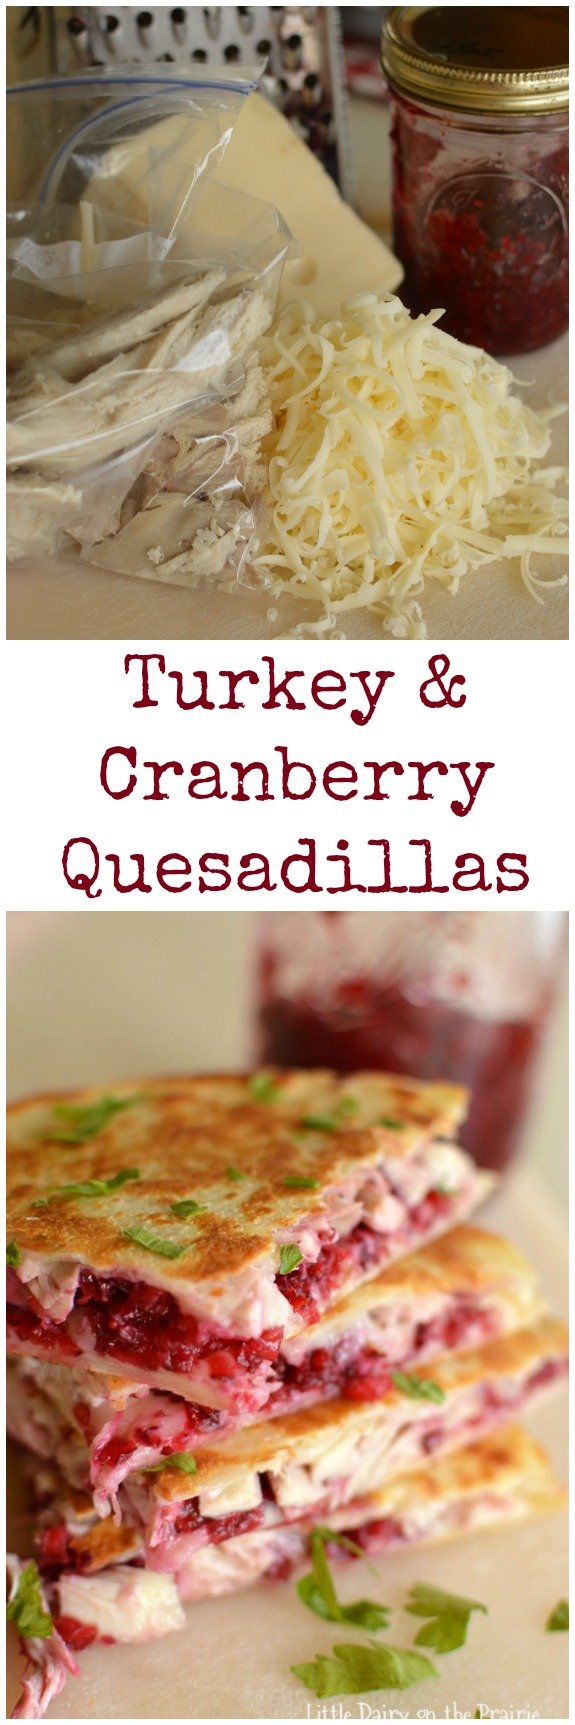 Turkey and Cranberry Quesadillas are quick and easy way to use up leftover turkey. Tust me, no complaints about leftovers on this one!